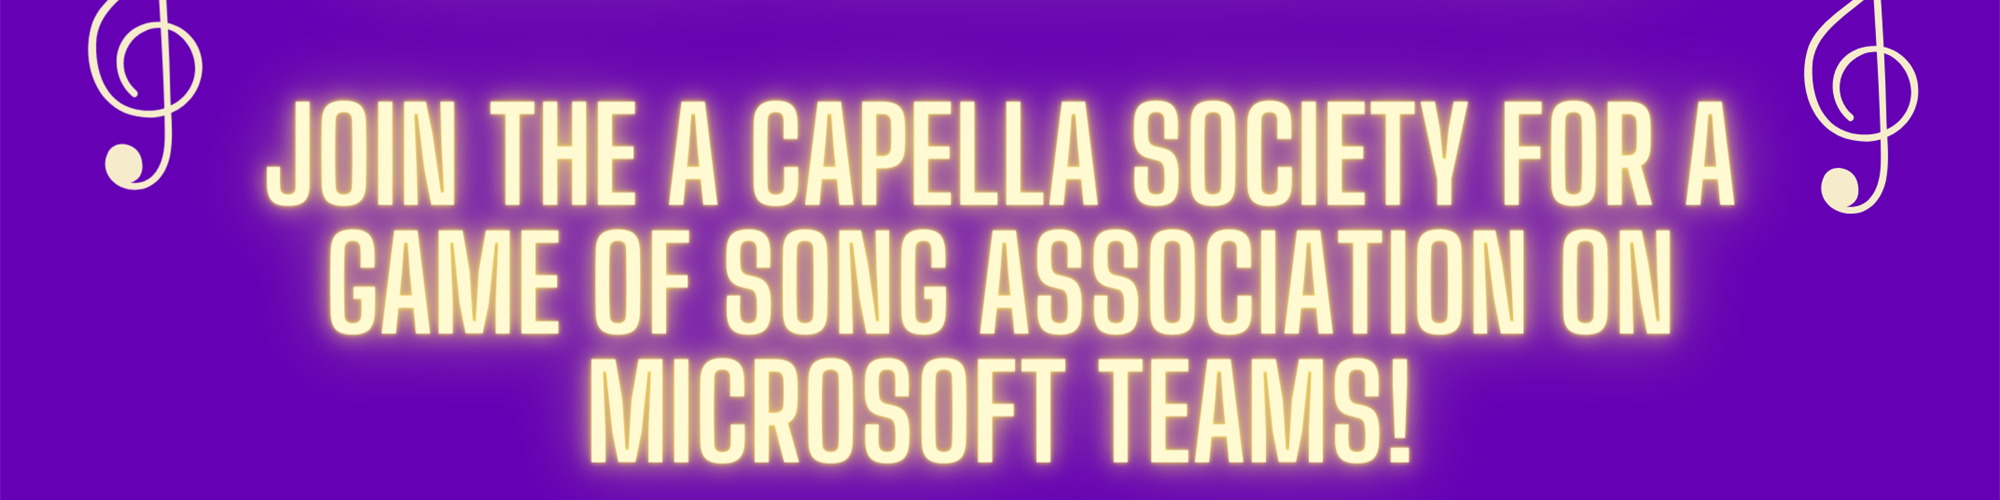 A Capella Society's Song Association Night!